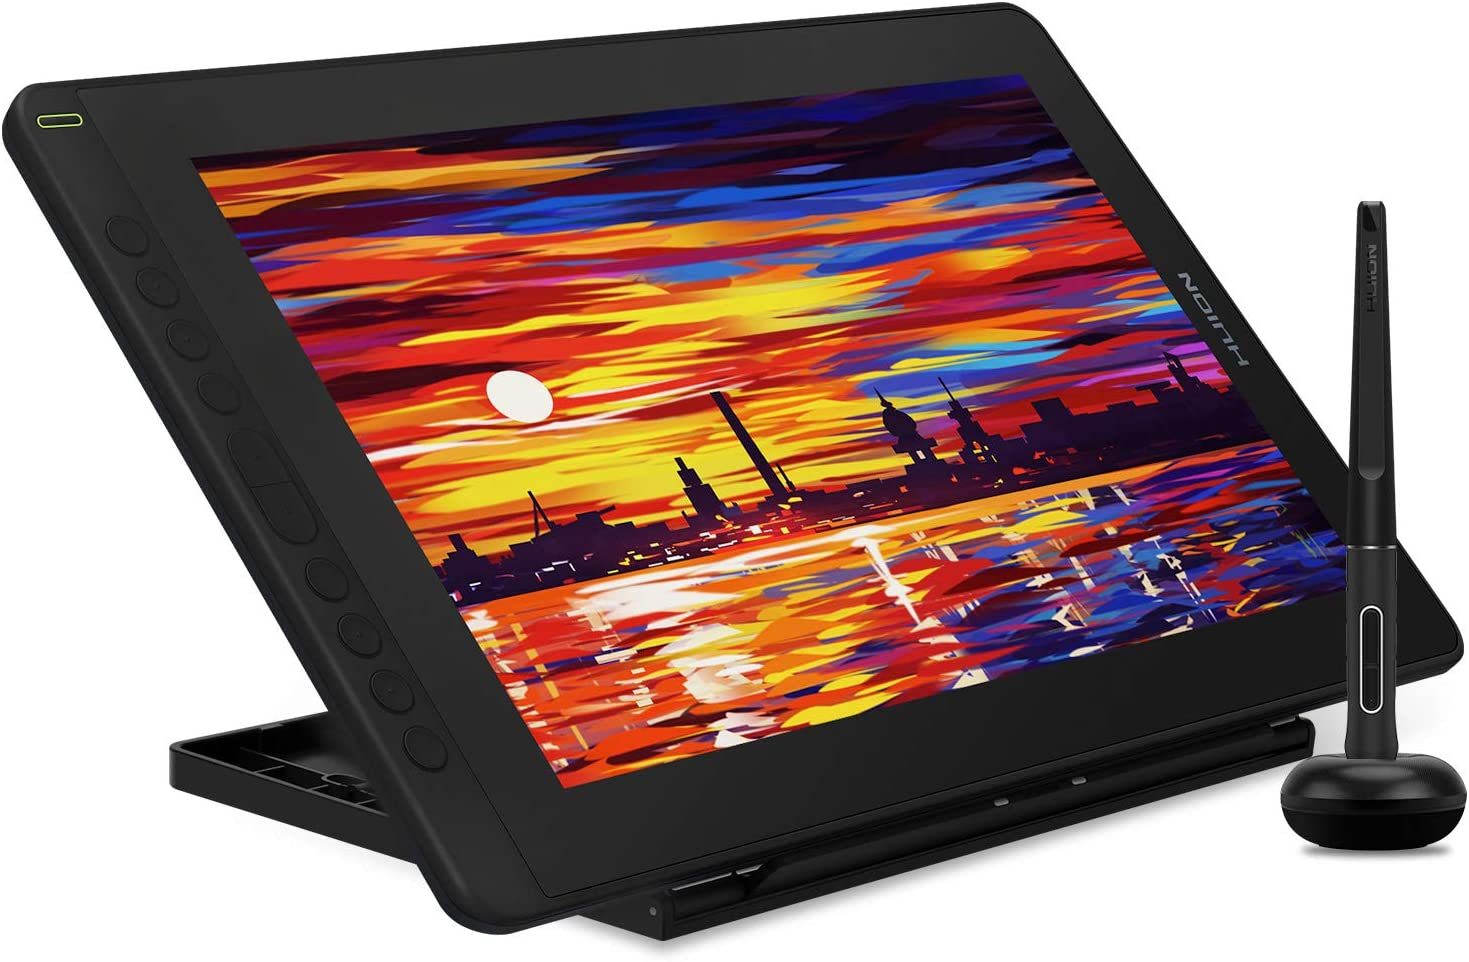 2021 HUION KAMVAS 16 Graphics Drawing Tablet with Full-Laminated Screen Android Support Graphic Monitor Pen Tablet with Battery-Free Stylus Tilt 10 Express Keys Adjustable Stand -15.6 Inch Pen Display